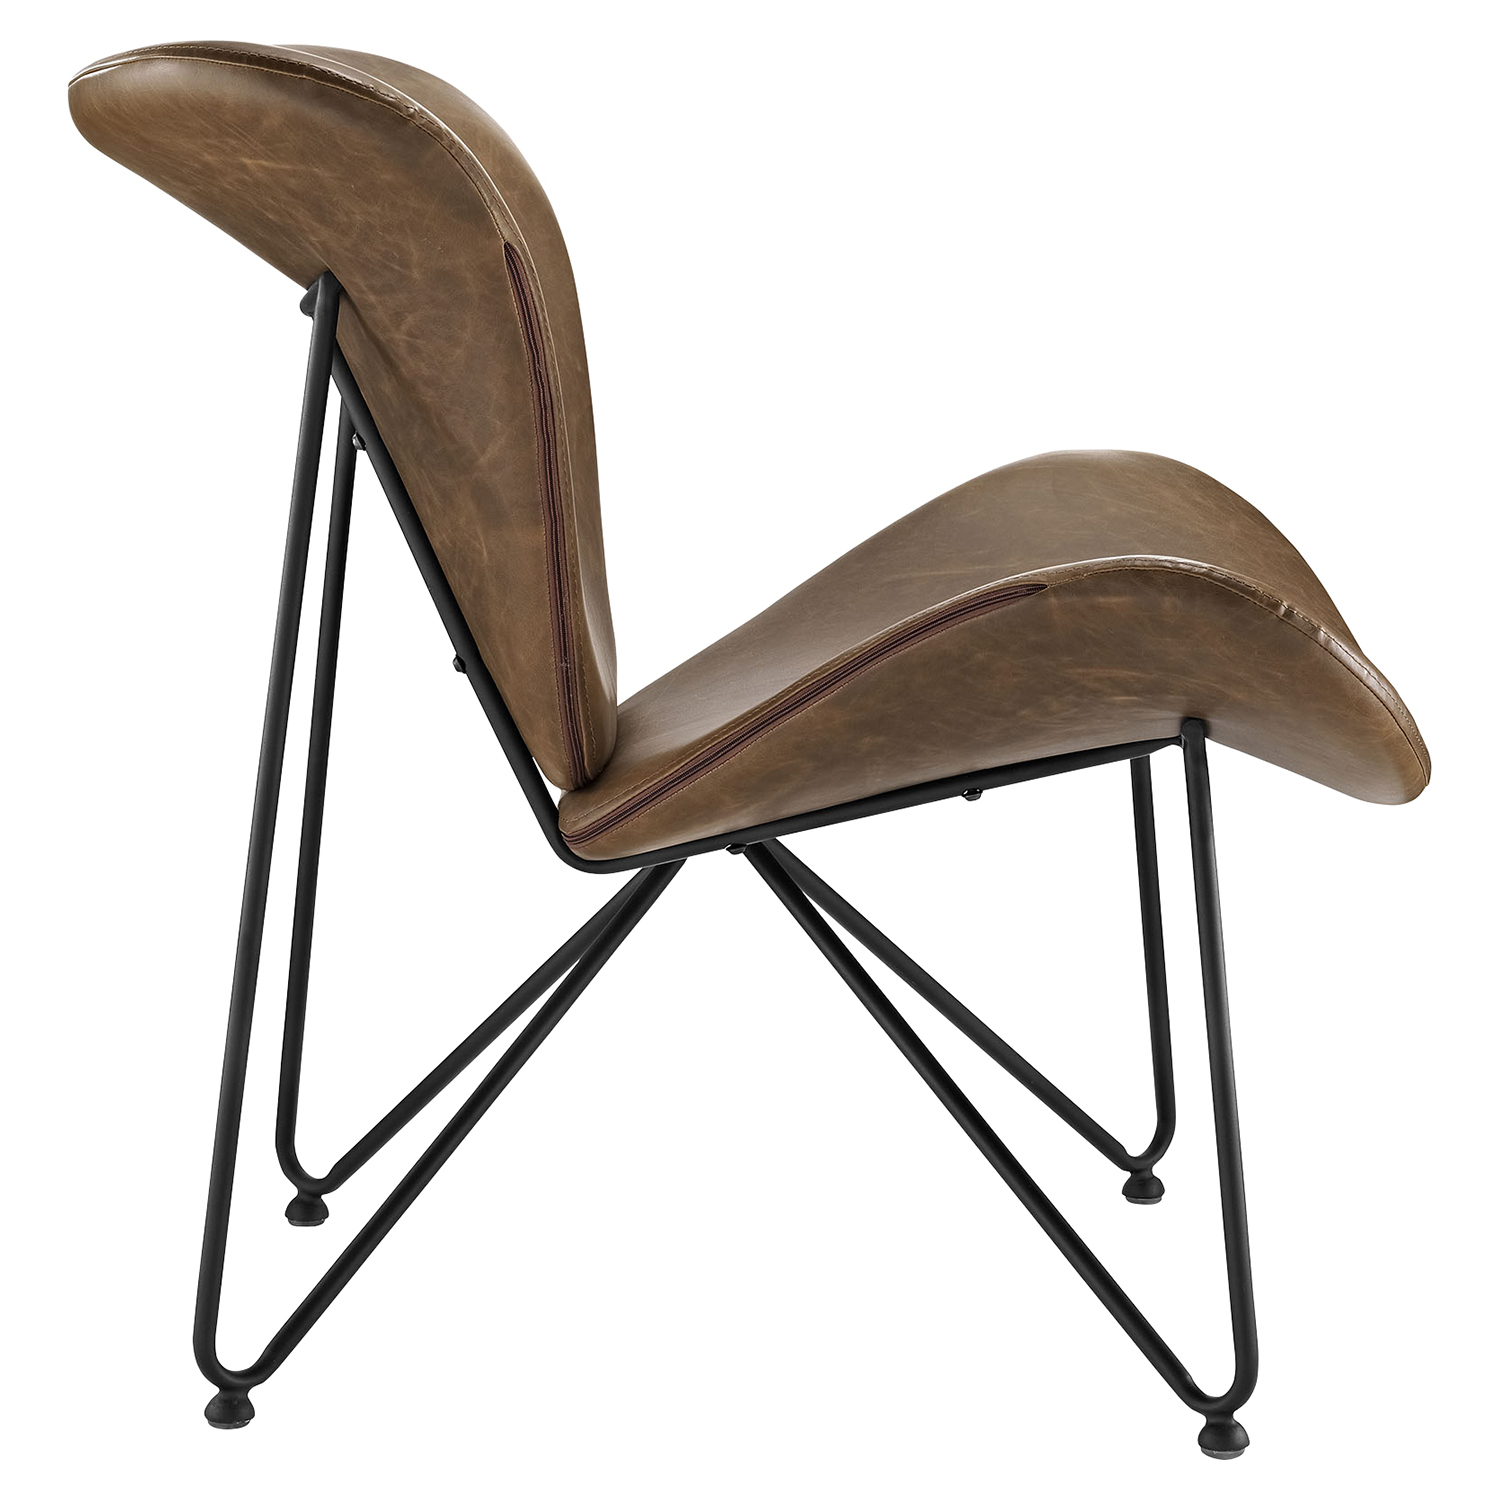 Glide Leatherette Lounge Chair - Brown - EEI-1807-BRN